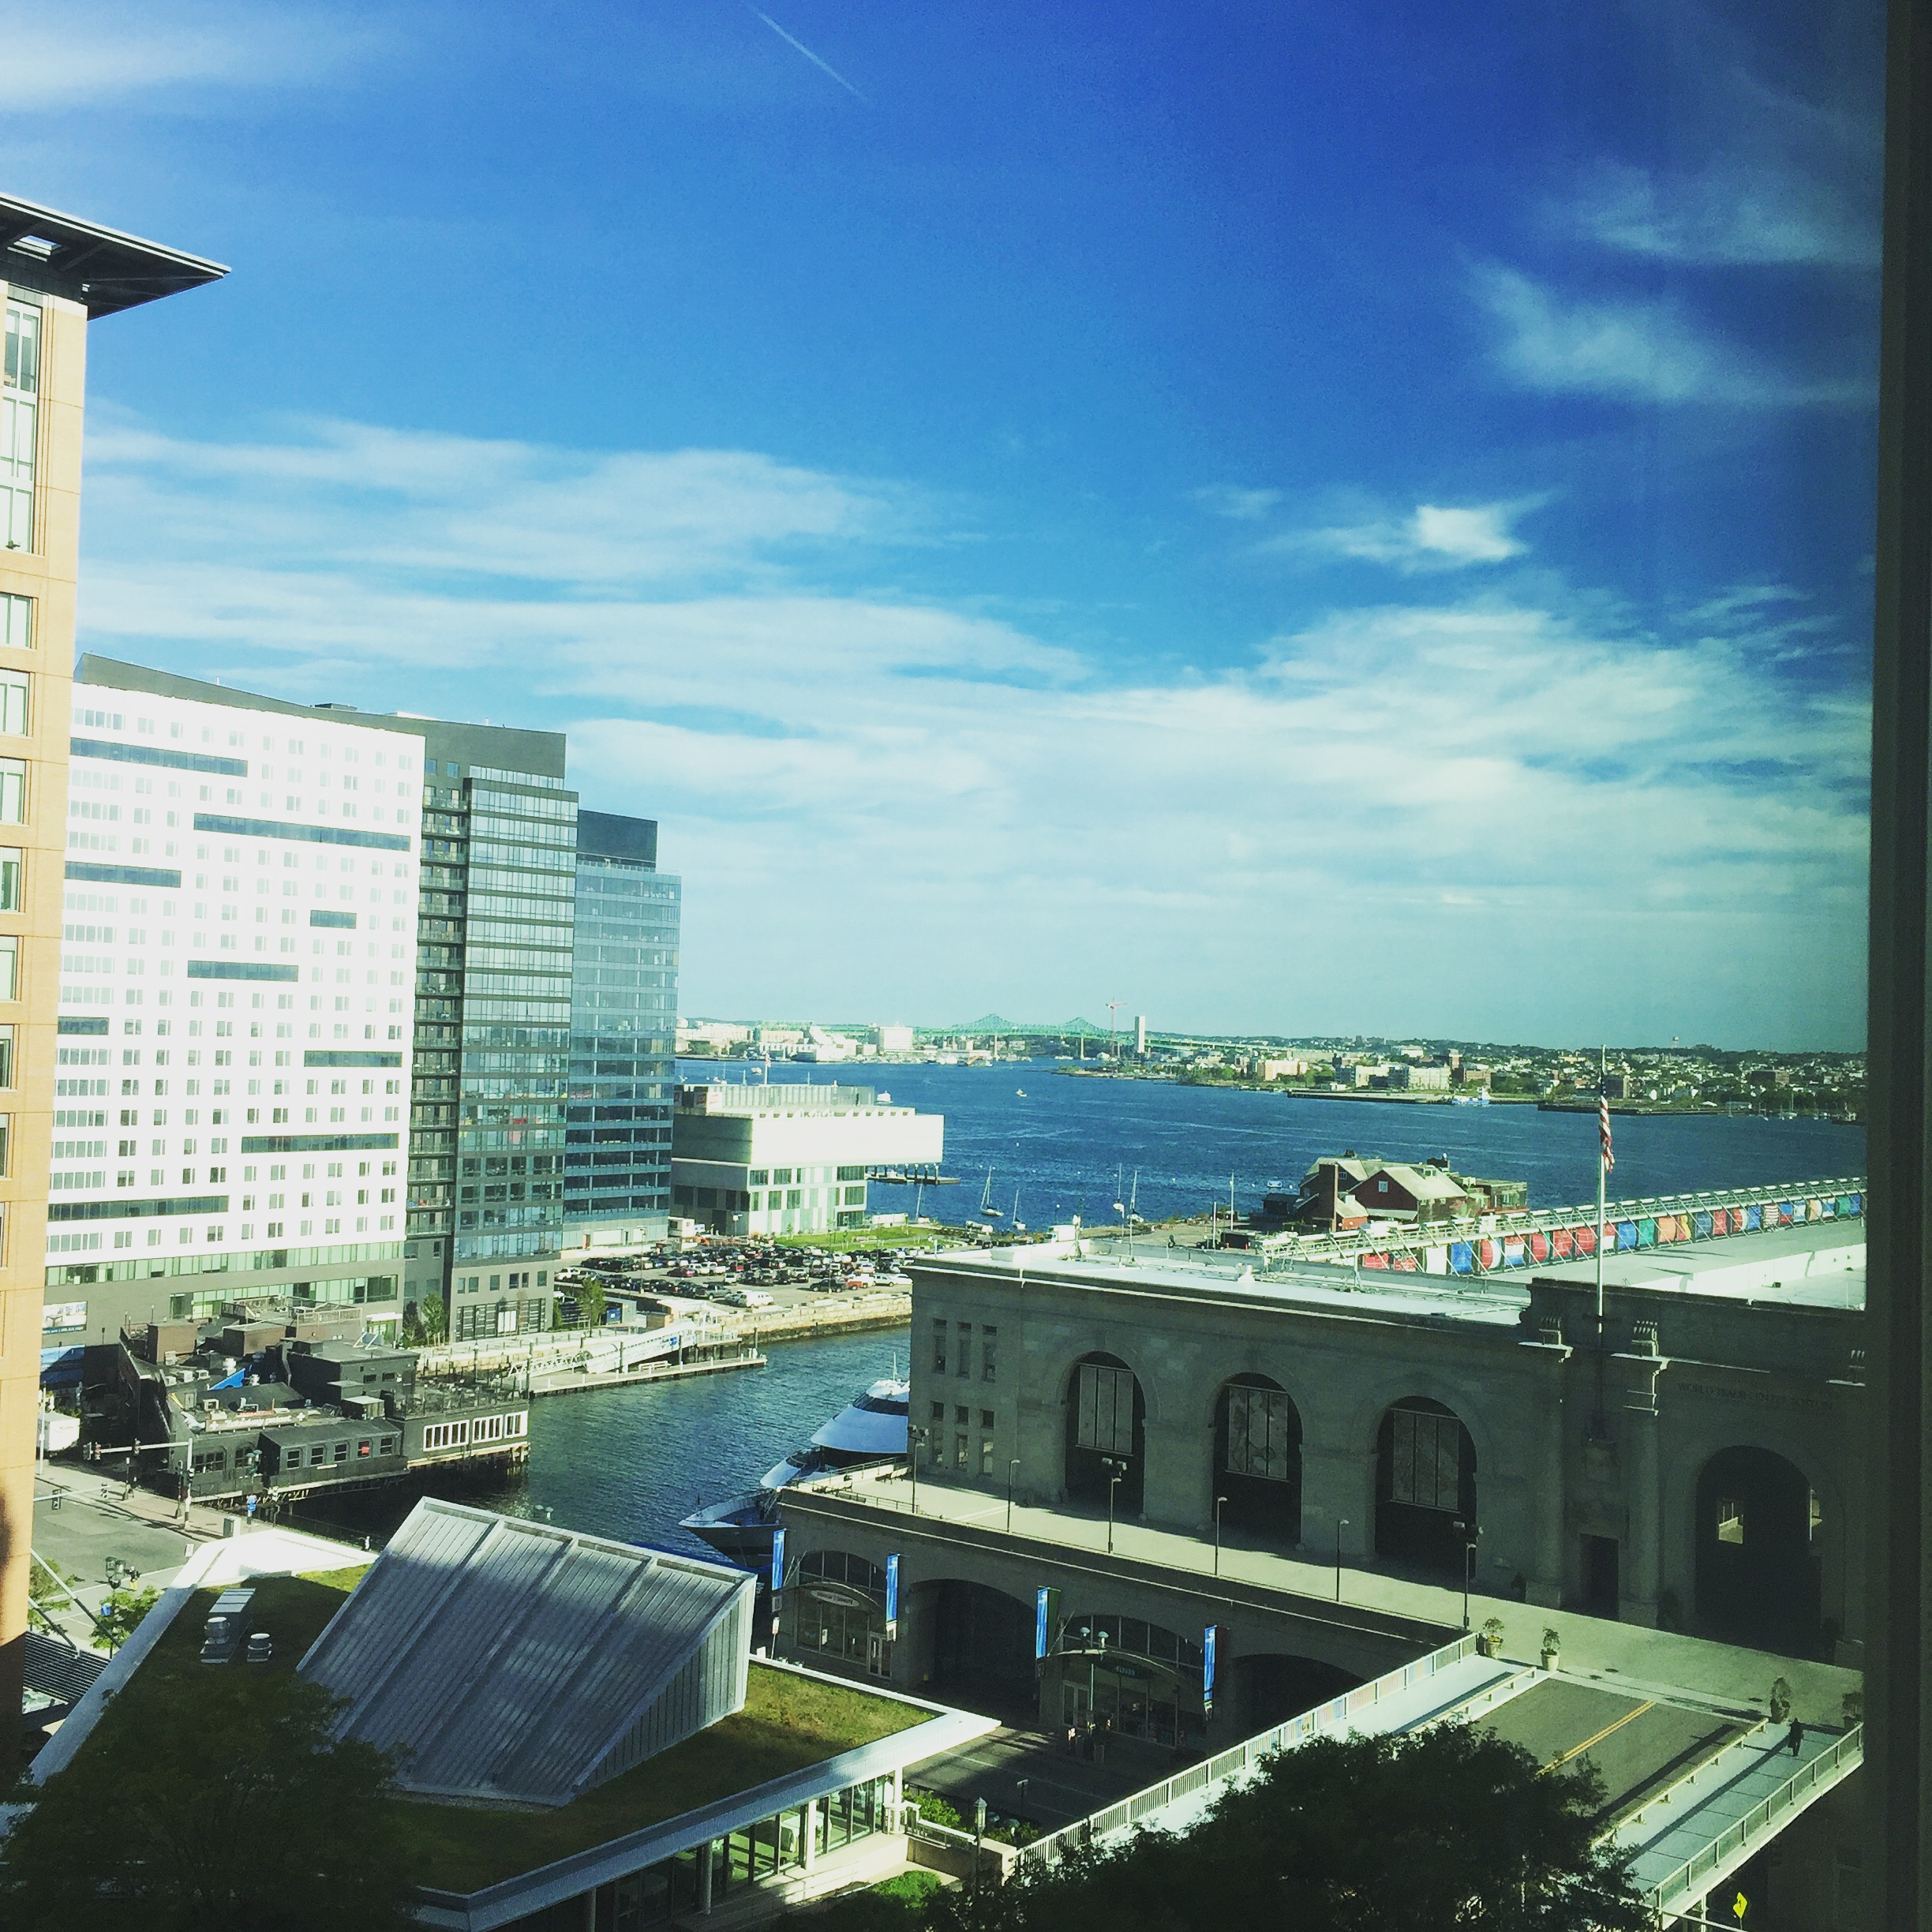 Boston harbor, as seen from our hotel room